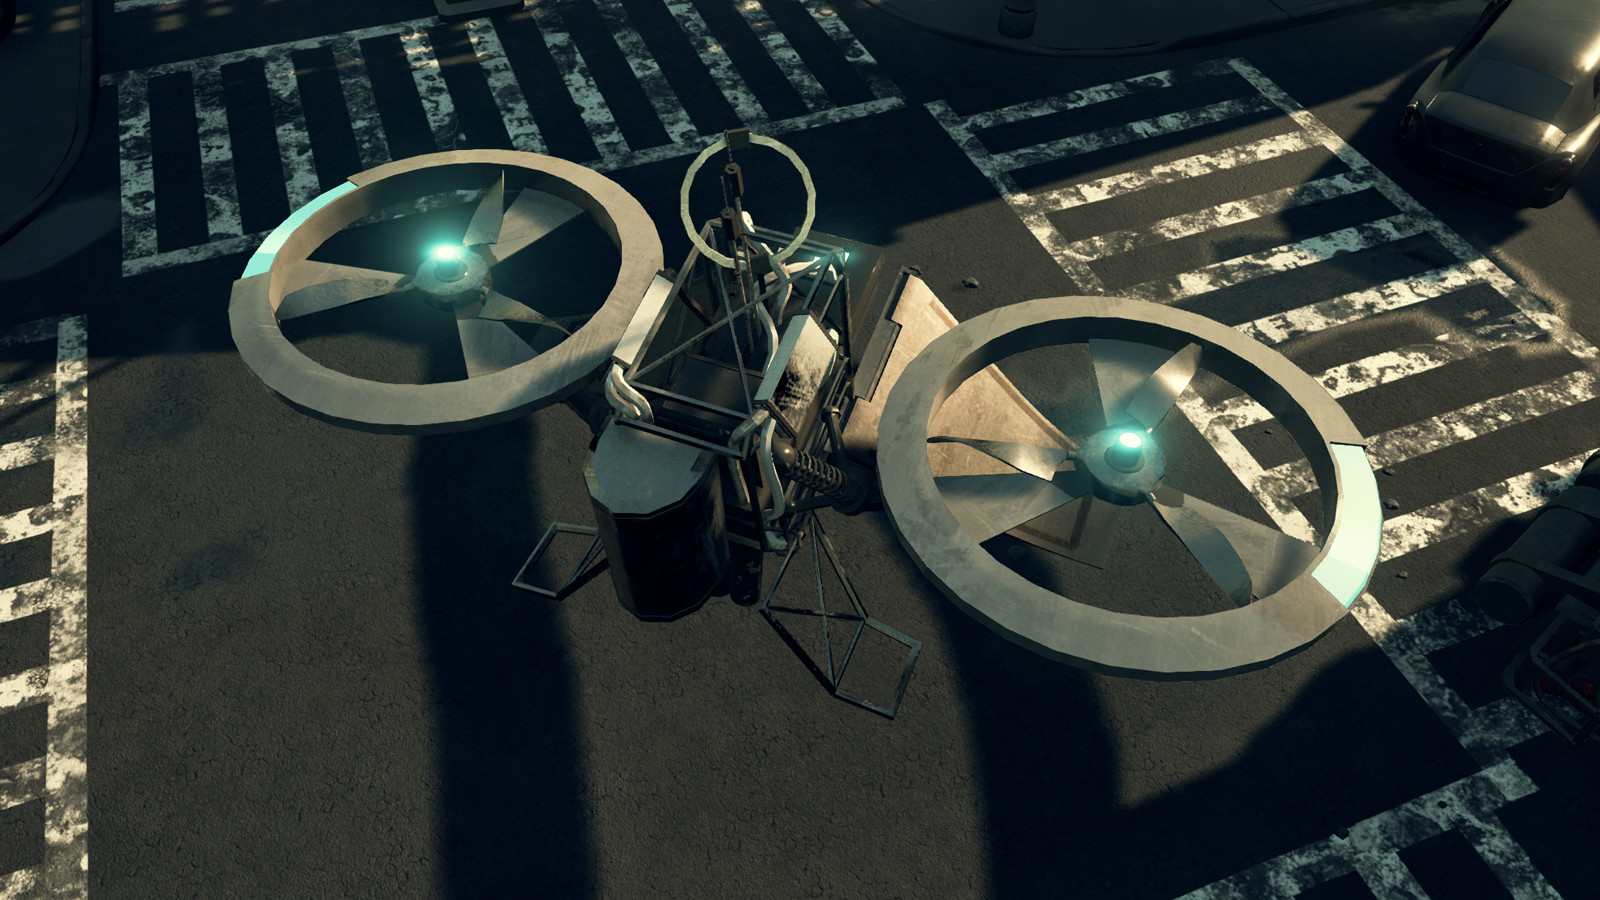 Top view of the drone in the streets of the city